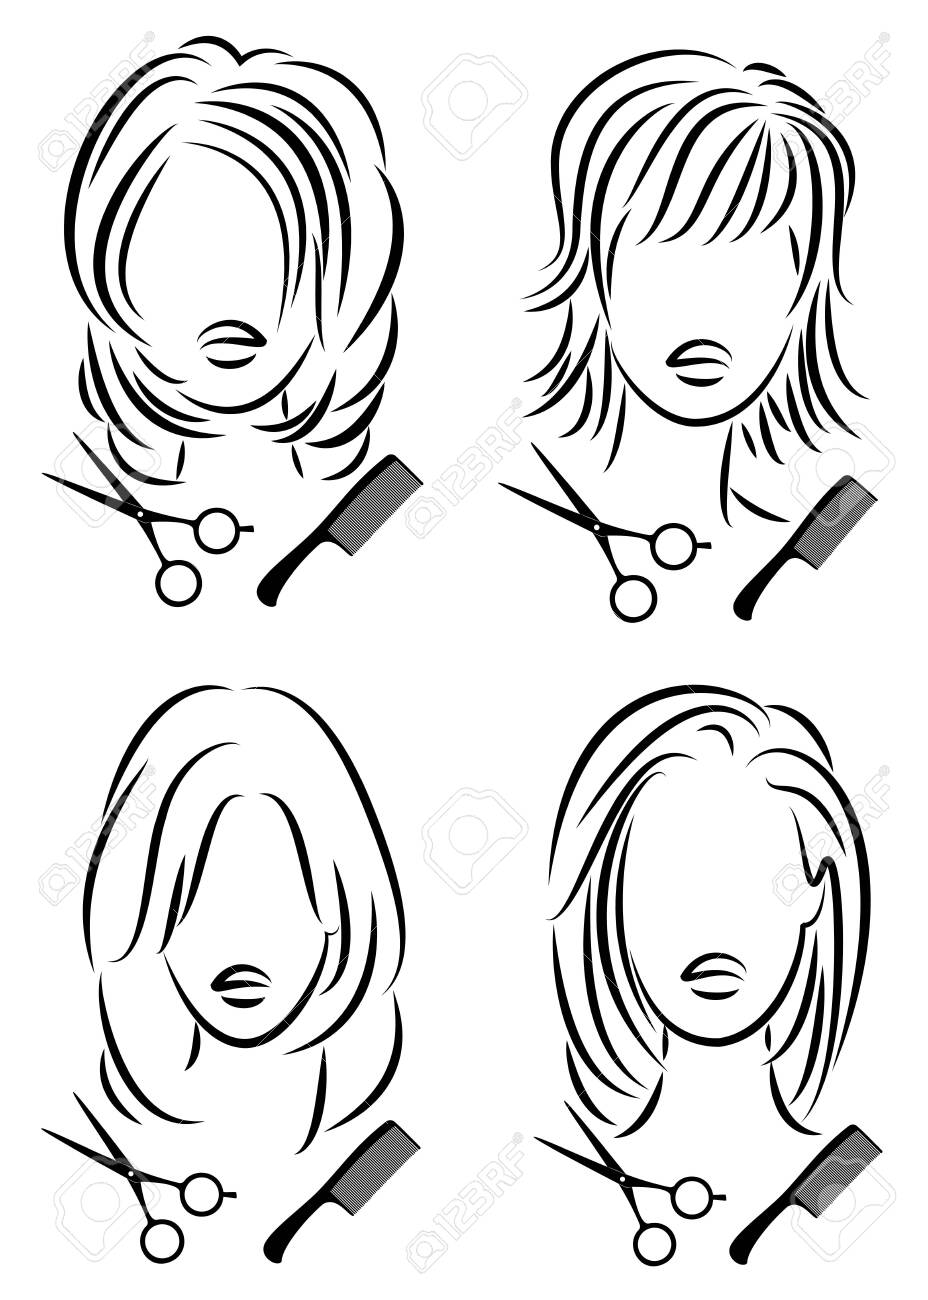 Collection. Silhouette of a cute lady. The girl shows a hairstyle on medium and long hair and scissors. - 148502197